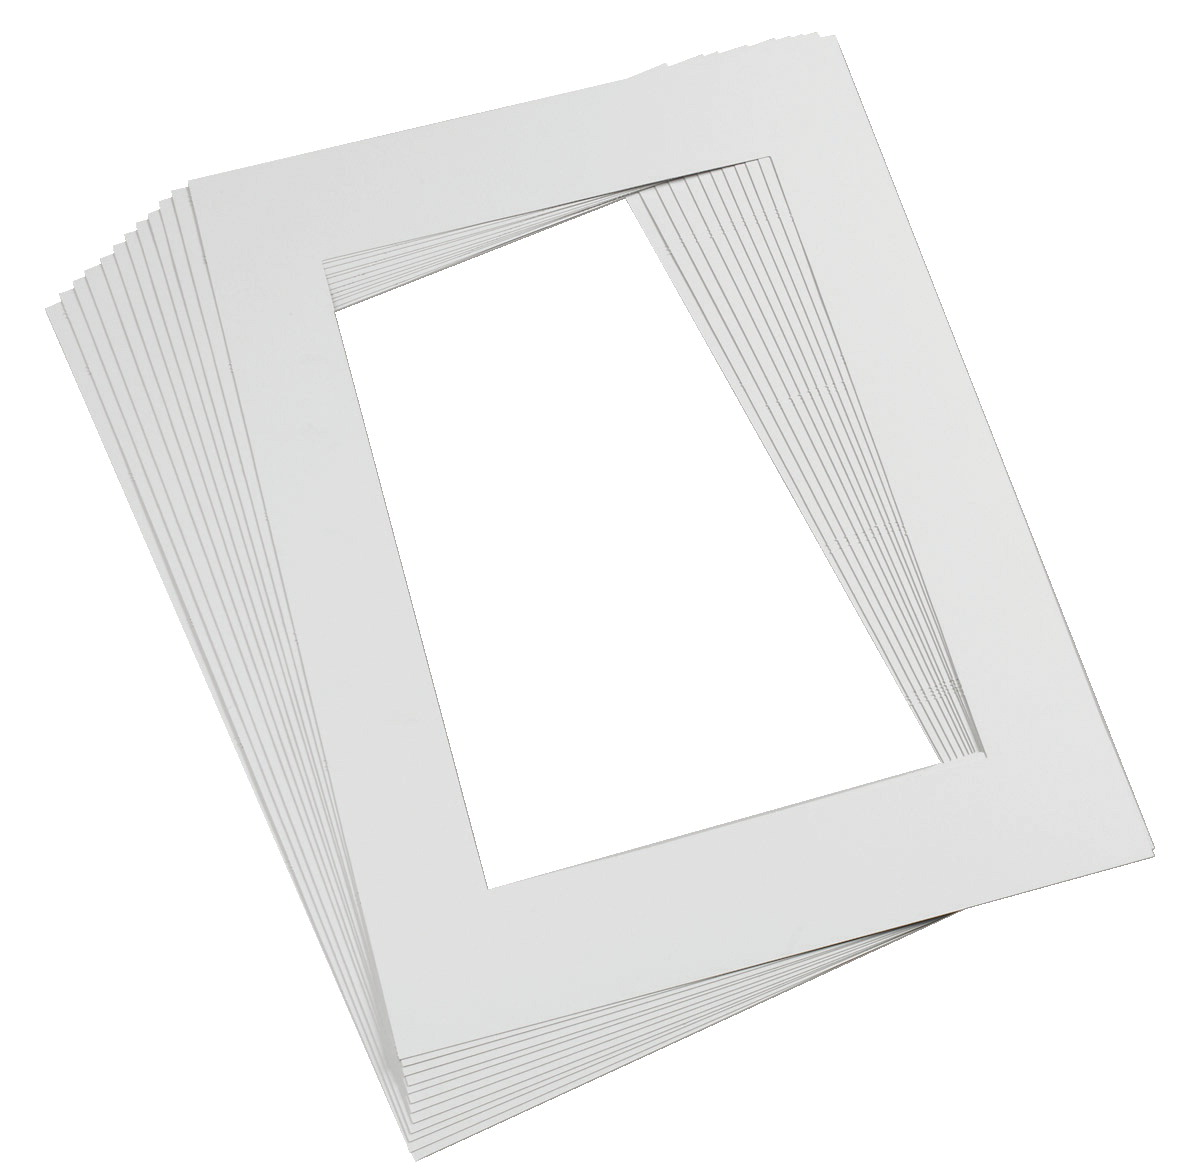 Pacon Pre-Cut Mat Frame, White - SOAR Life Products